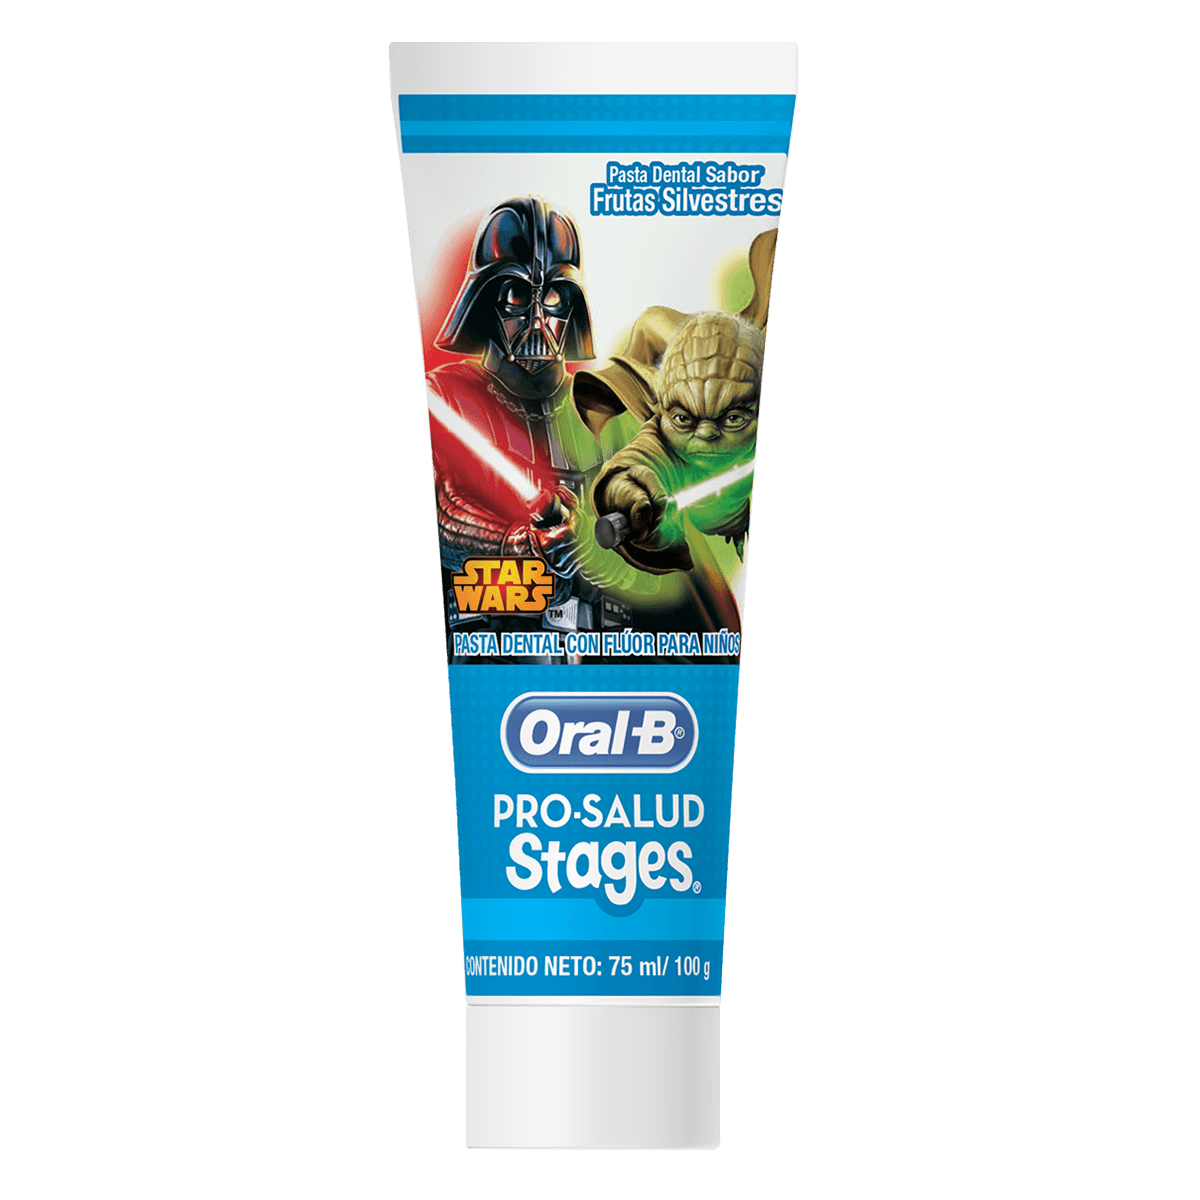 Pasta dental Oral-B para niños Starwars